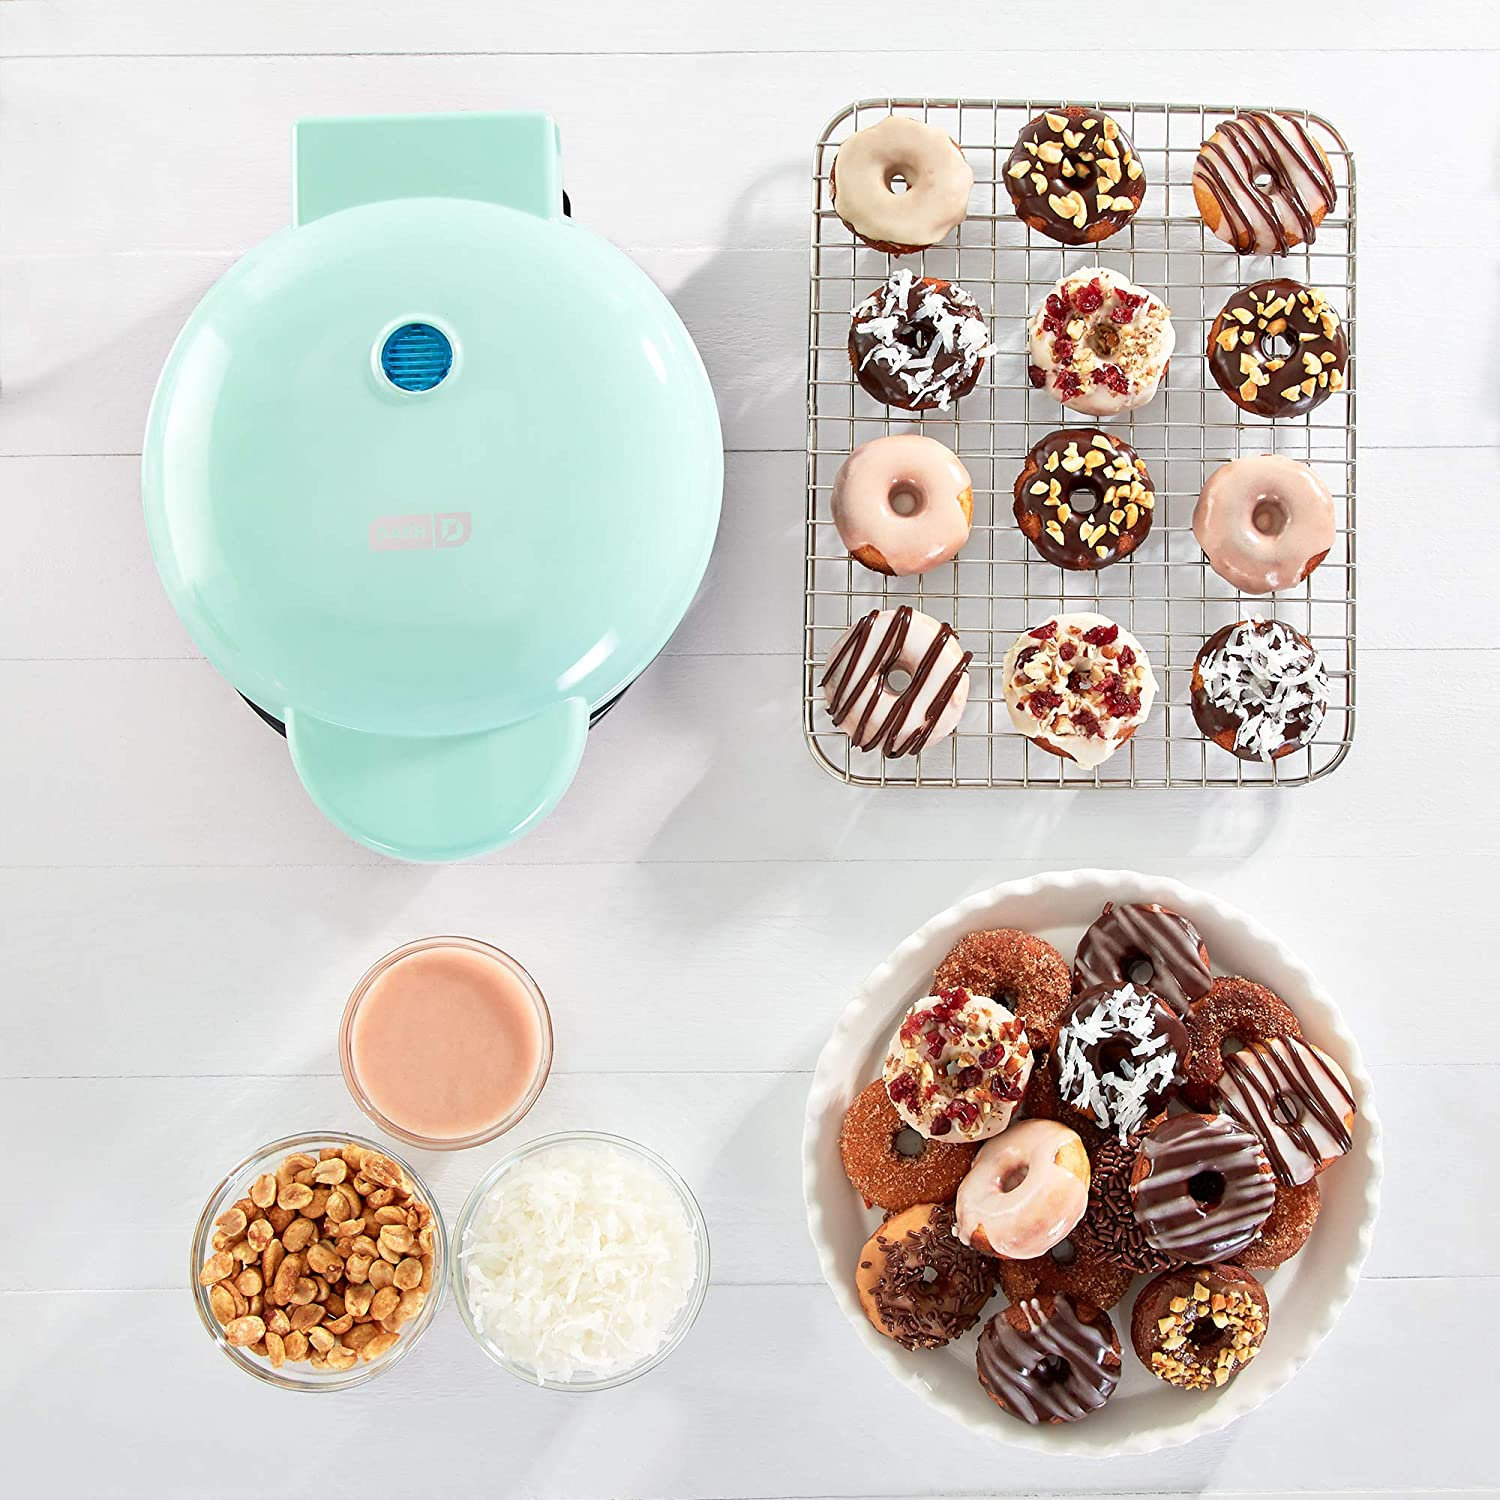 dash mini donut maker